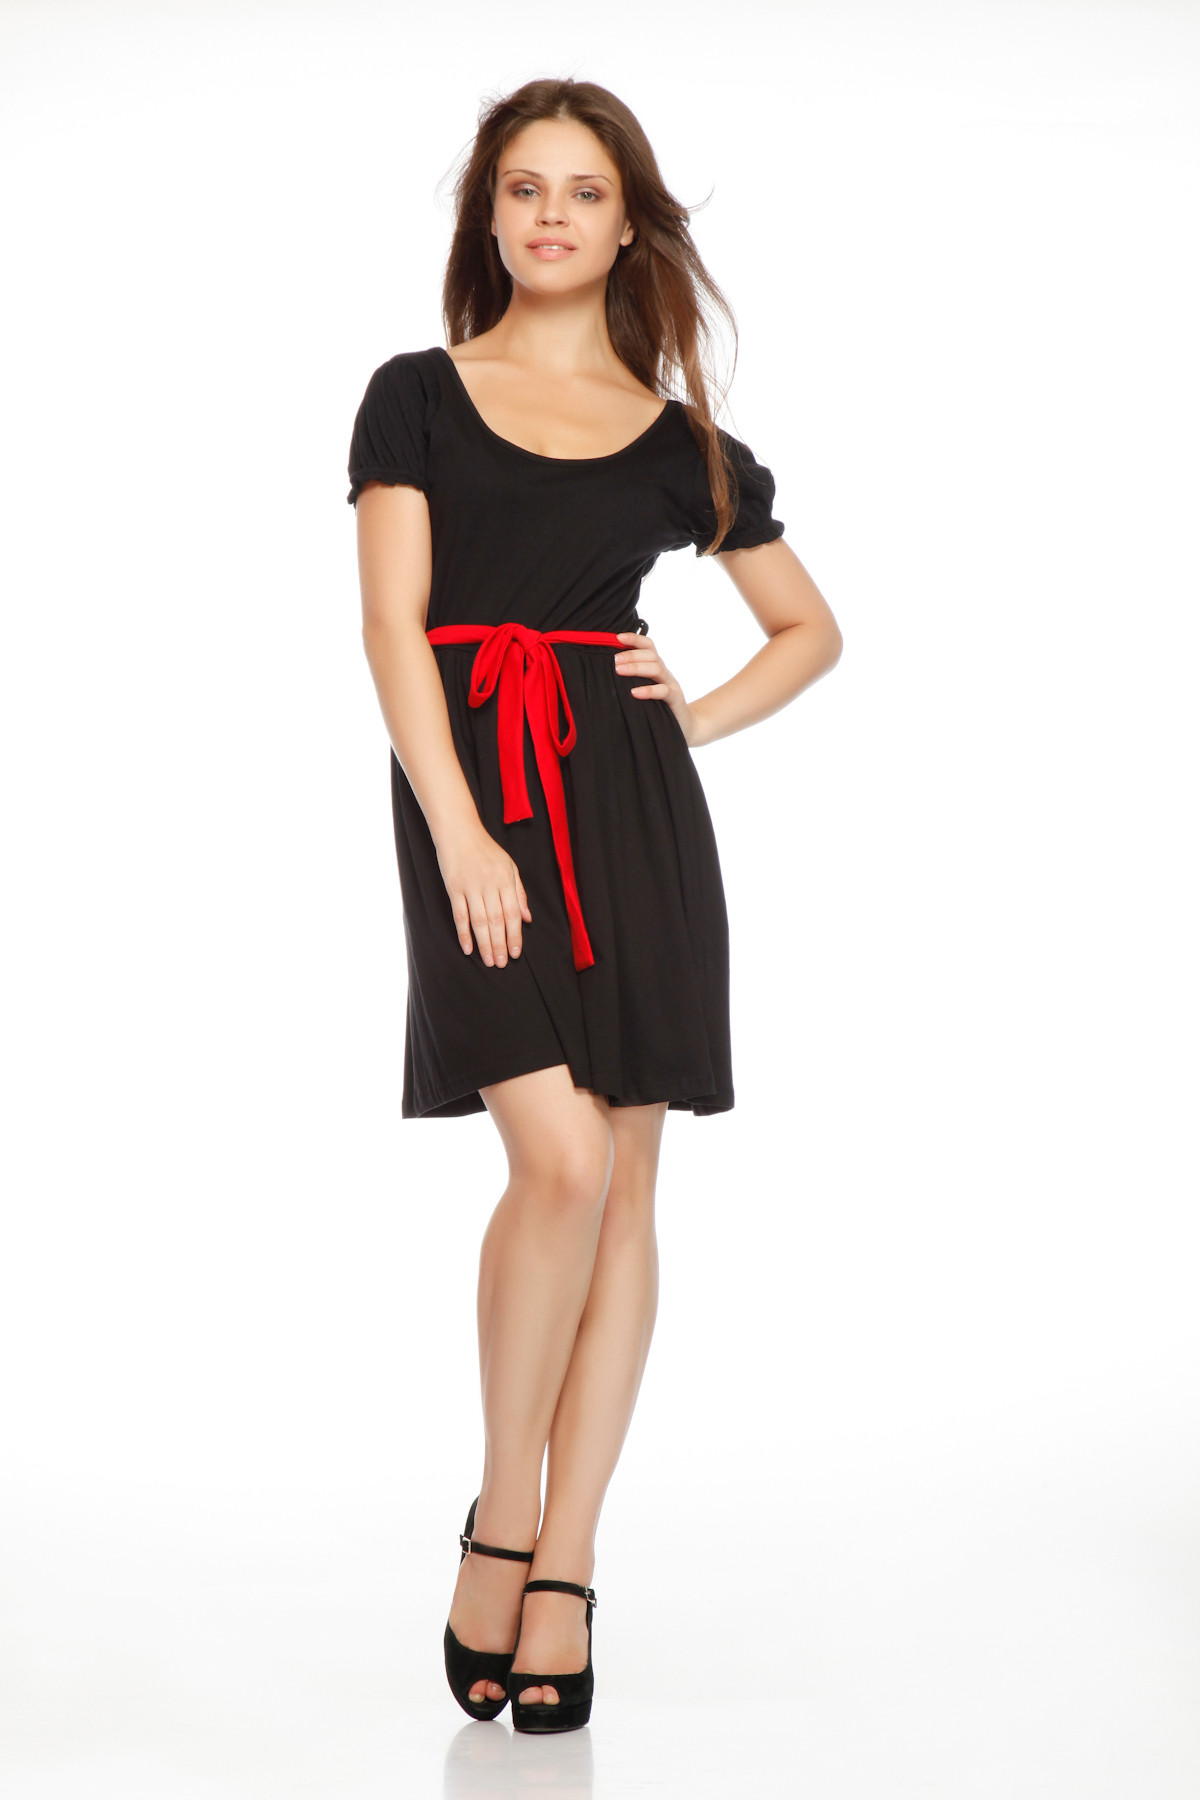 Gritstones Womens Red, Black Dress